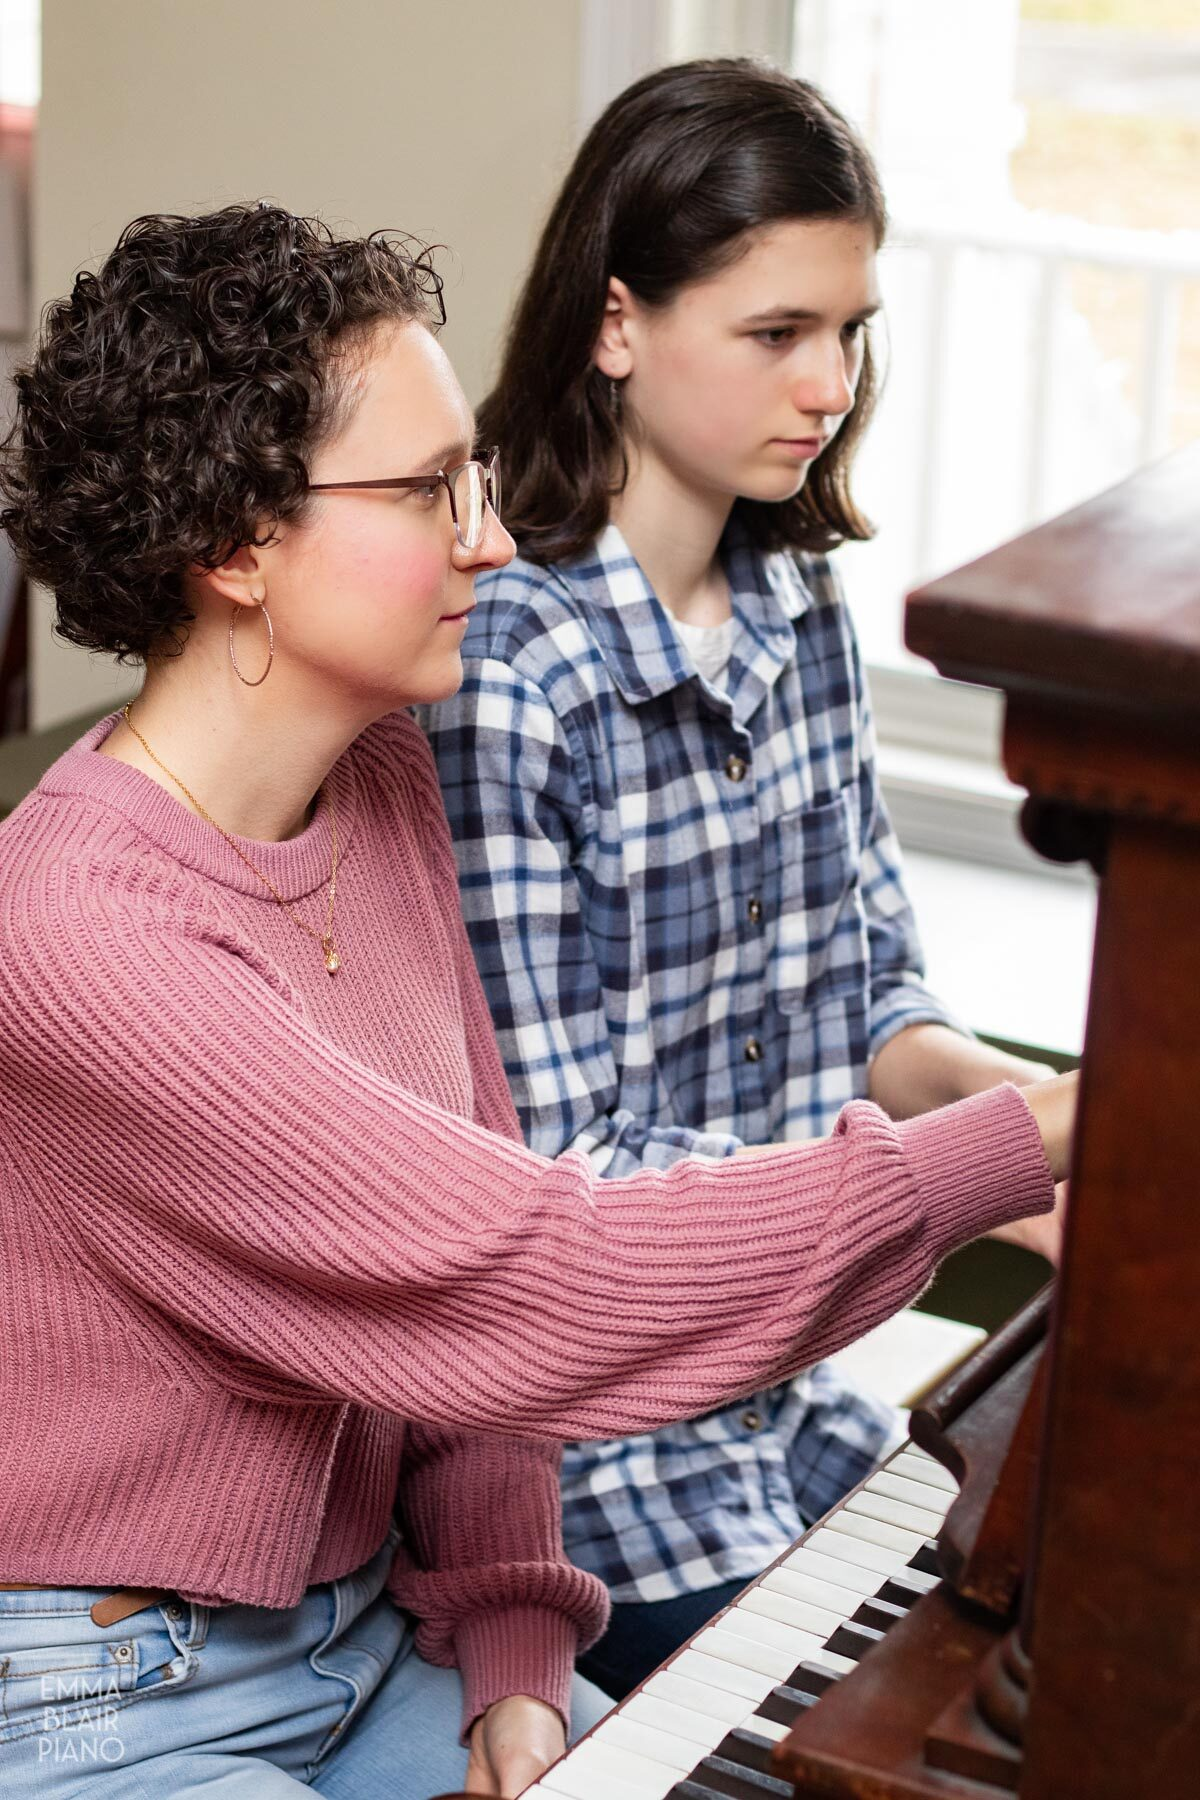 piano teacher pointing out something to her student